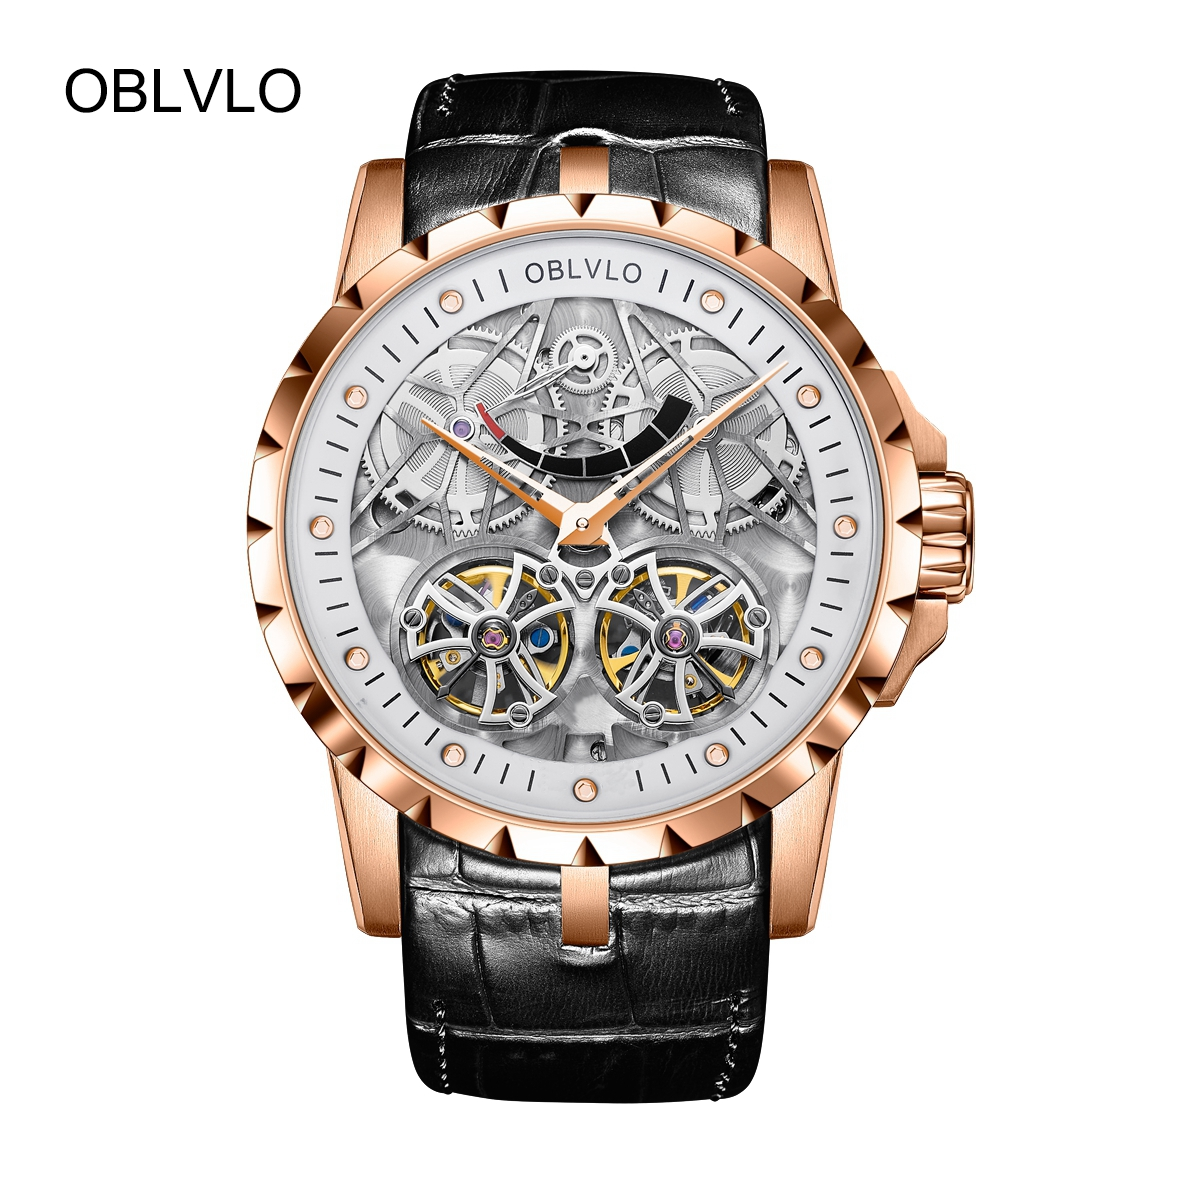 OBLVLO Luxury Men's Tourbillon Watches Transparent Skeleton Leather Strap Automatic Watch OBL3609RSBW